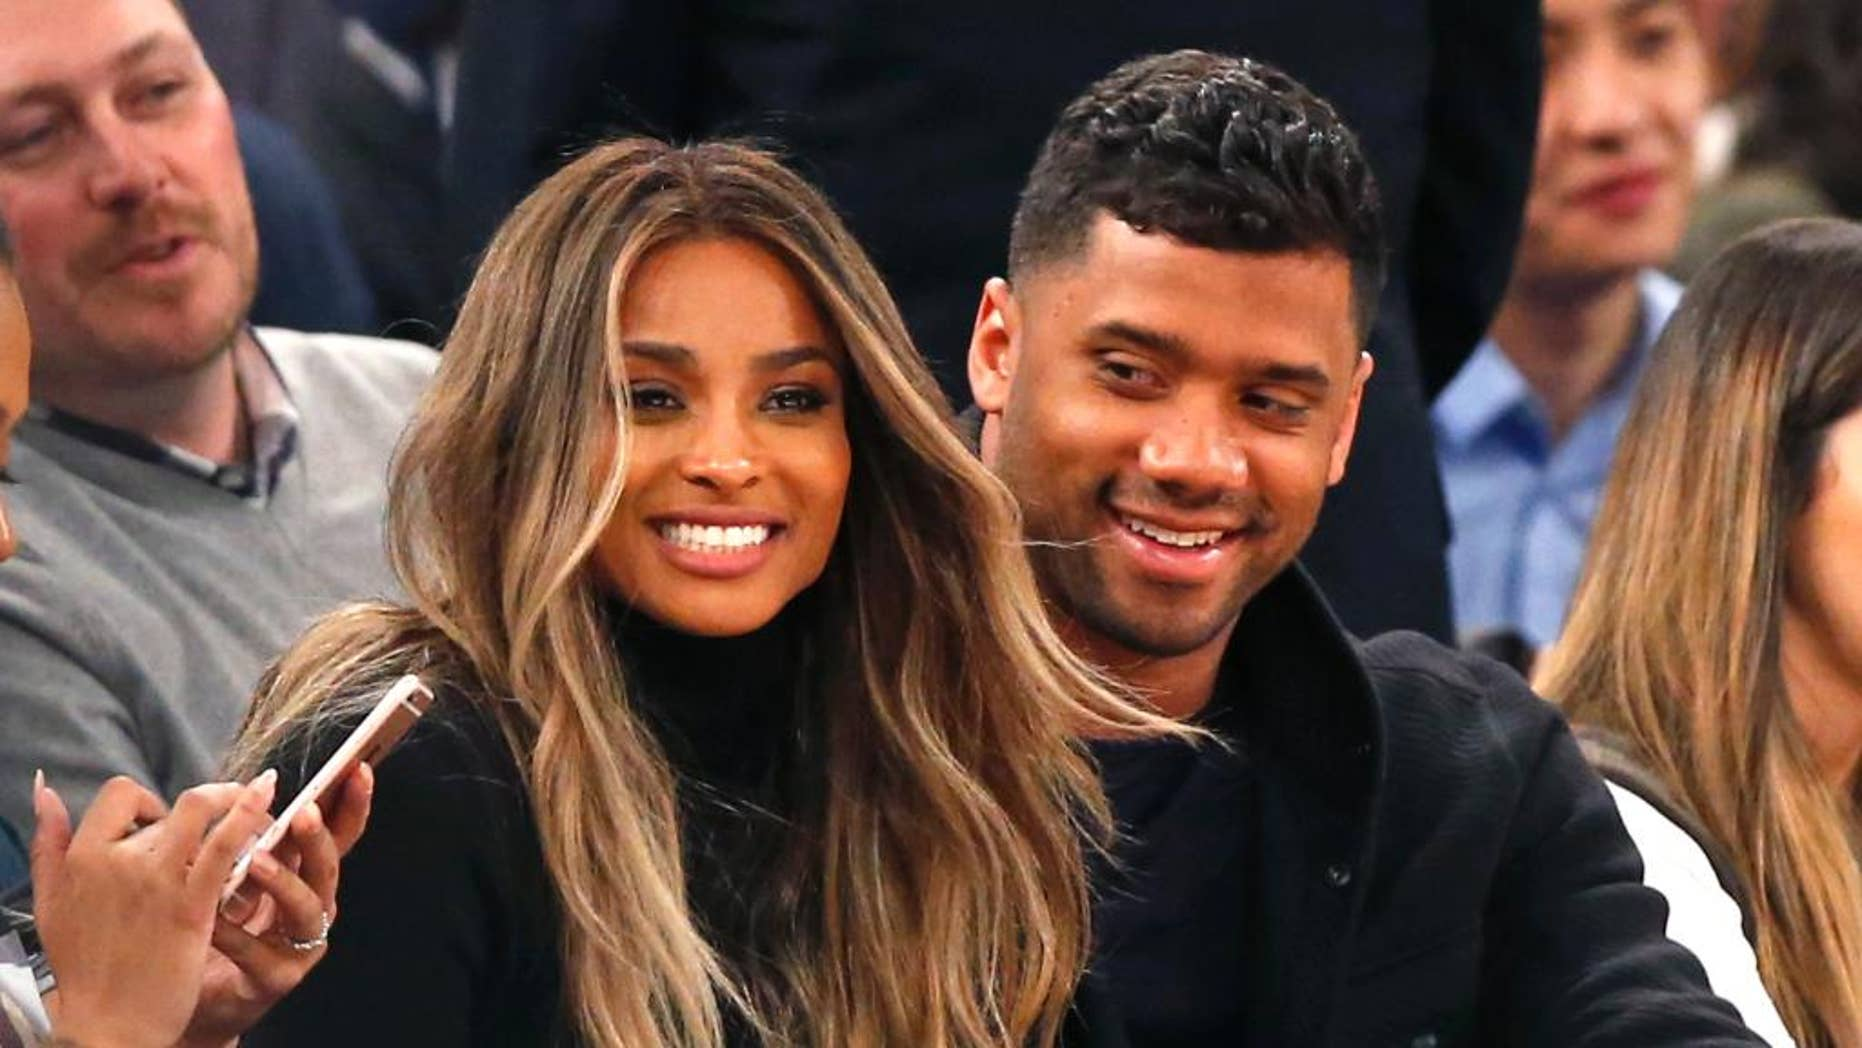 In this Feb. 9, 2016 file photo, singer Ciara, second from left, and Seattle Seahawks quarterback Russell Wilson sit courtside while attending an NBA basketball game between the New York Knicks and the Washington Wizards in New York.